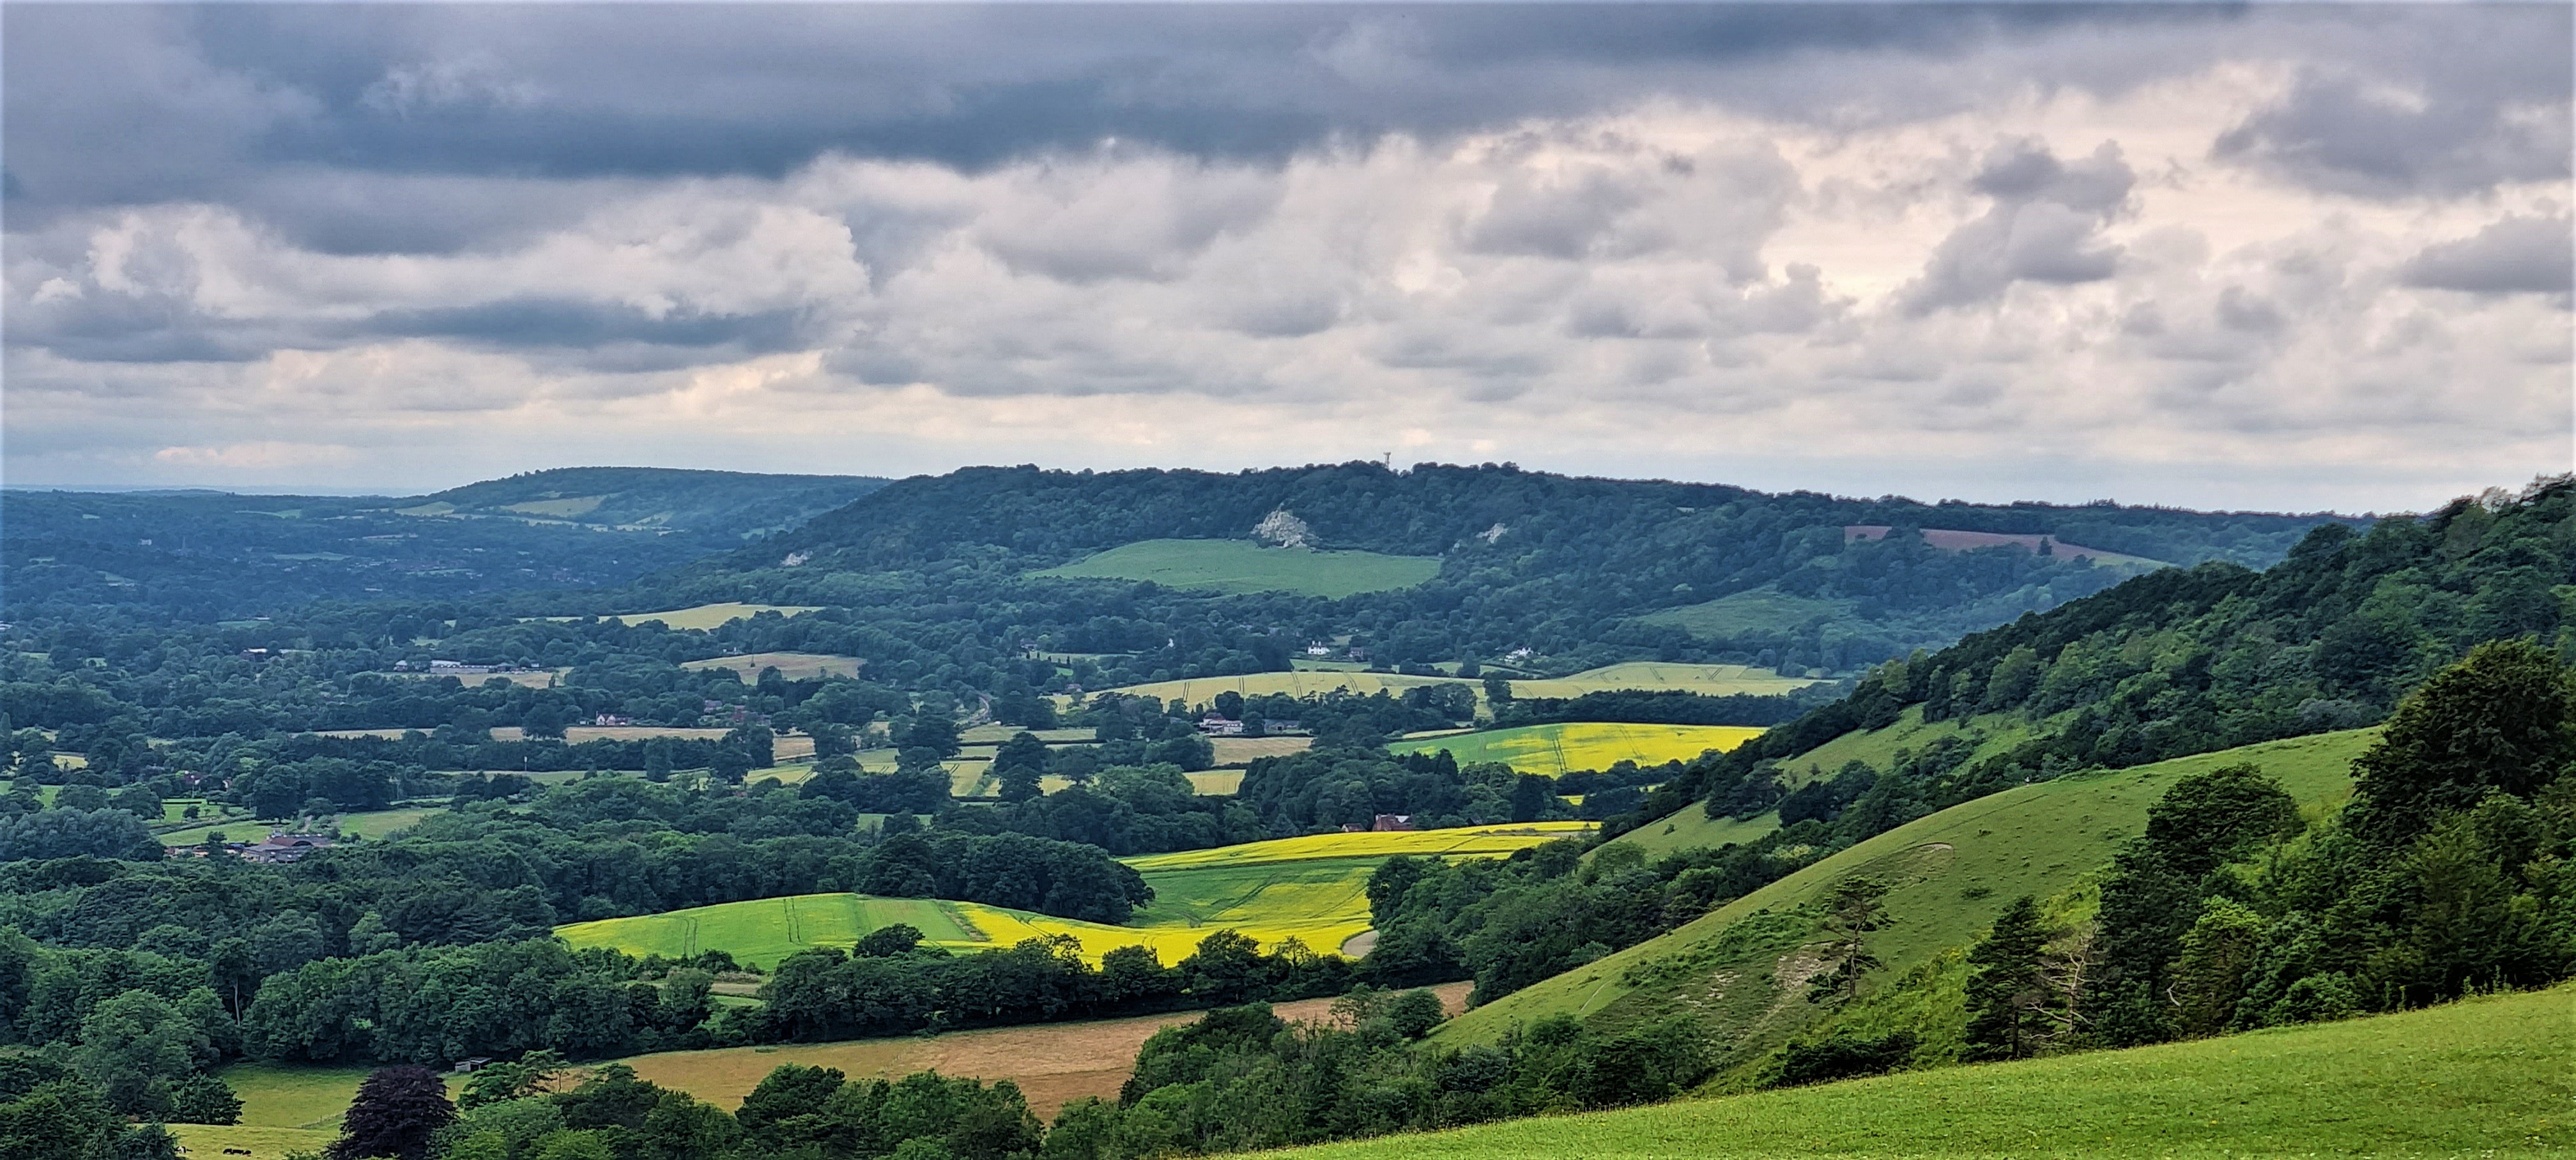 North Downs Way: Westhumble to Merstham